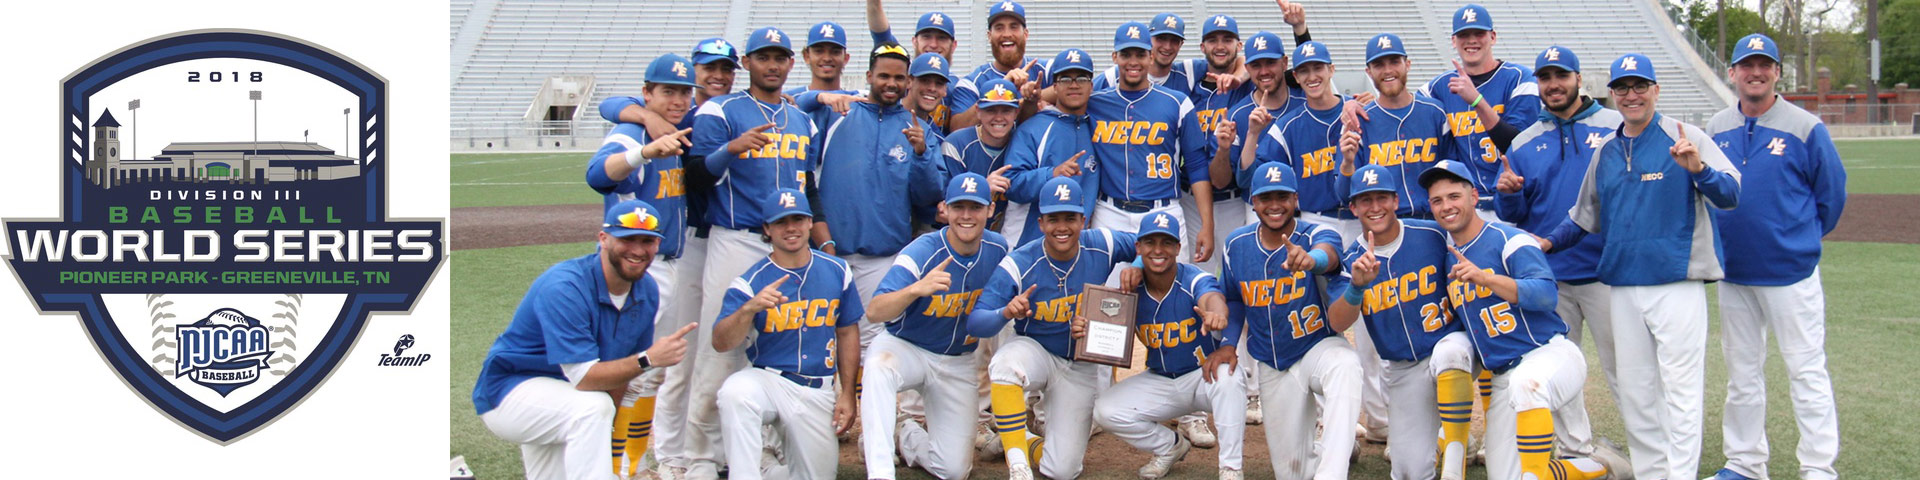 NECC Knights Baseball Team holding Divions F Championship plaque, and the NJCAA Division III World Series logo.